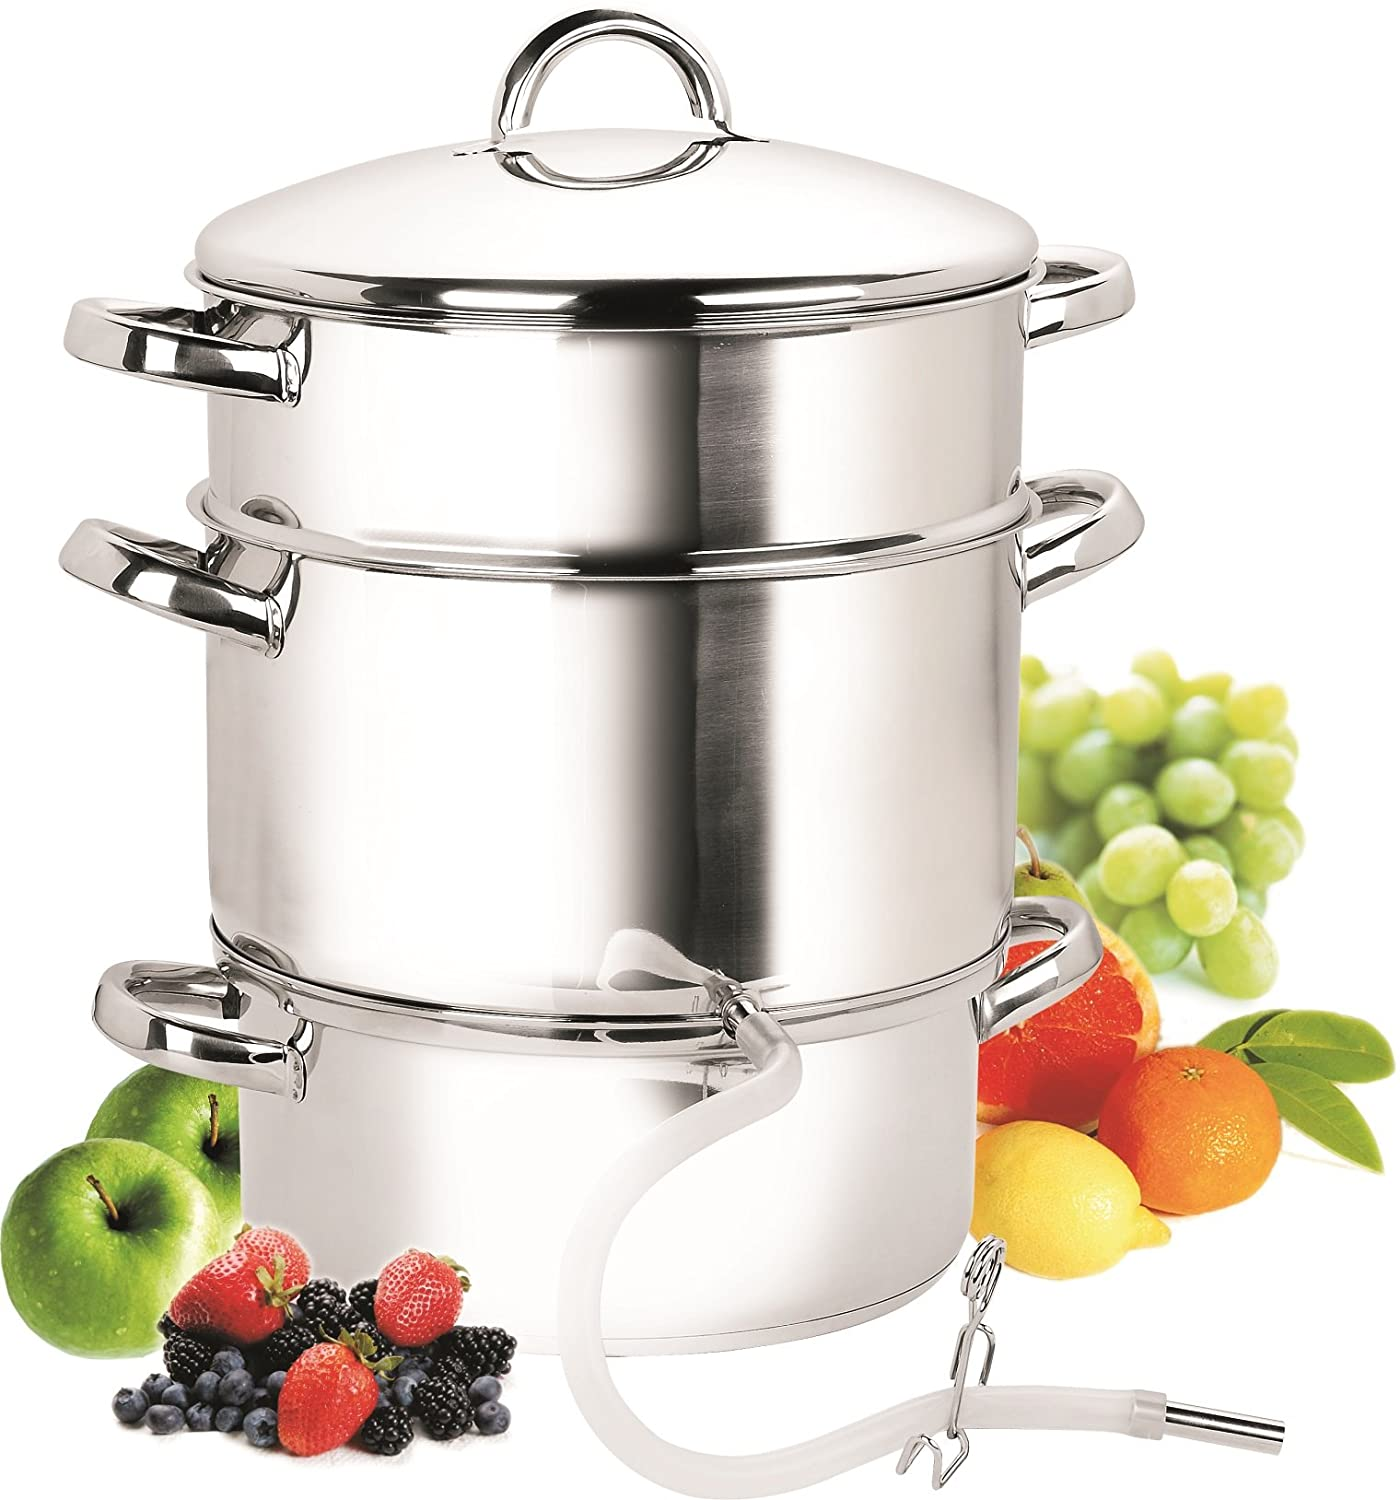 Cook N Home NC-00256 28cm 11-Quart Stainless Steel Fruit Juicer Steamer Multipot Silver